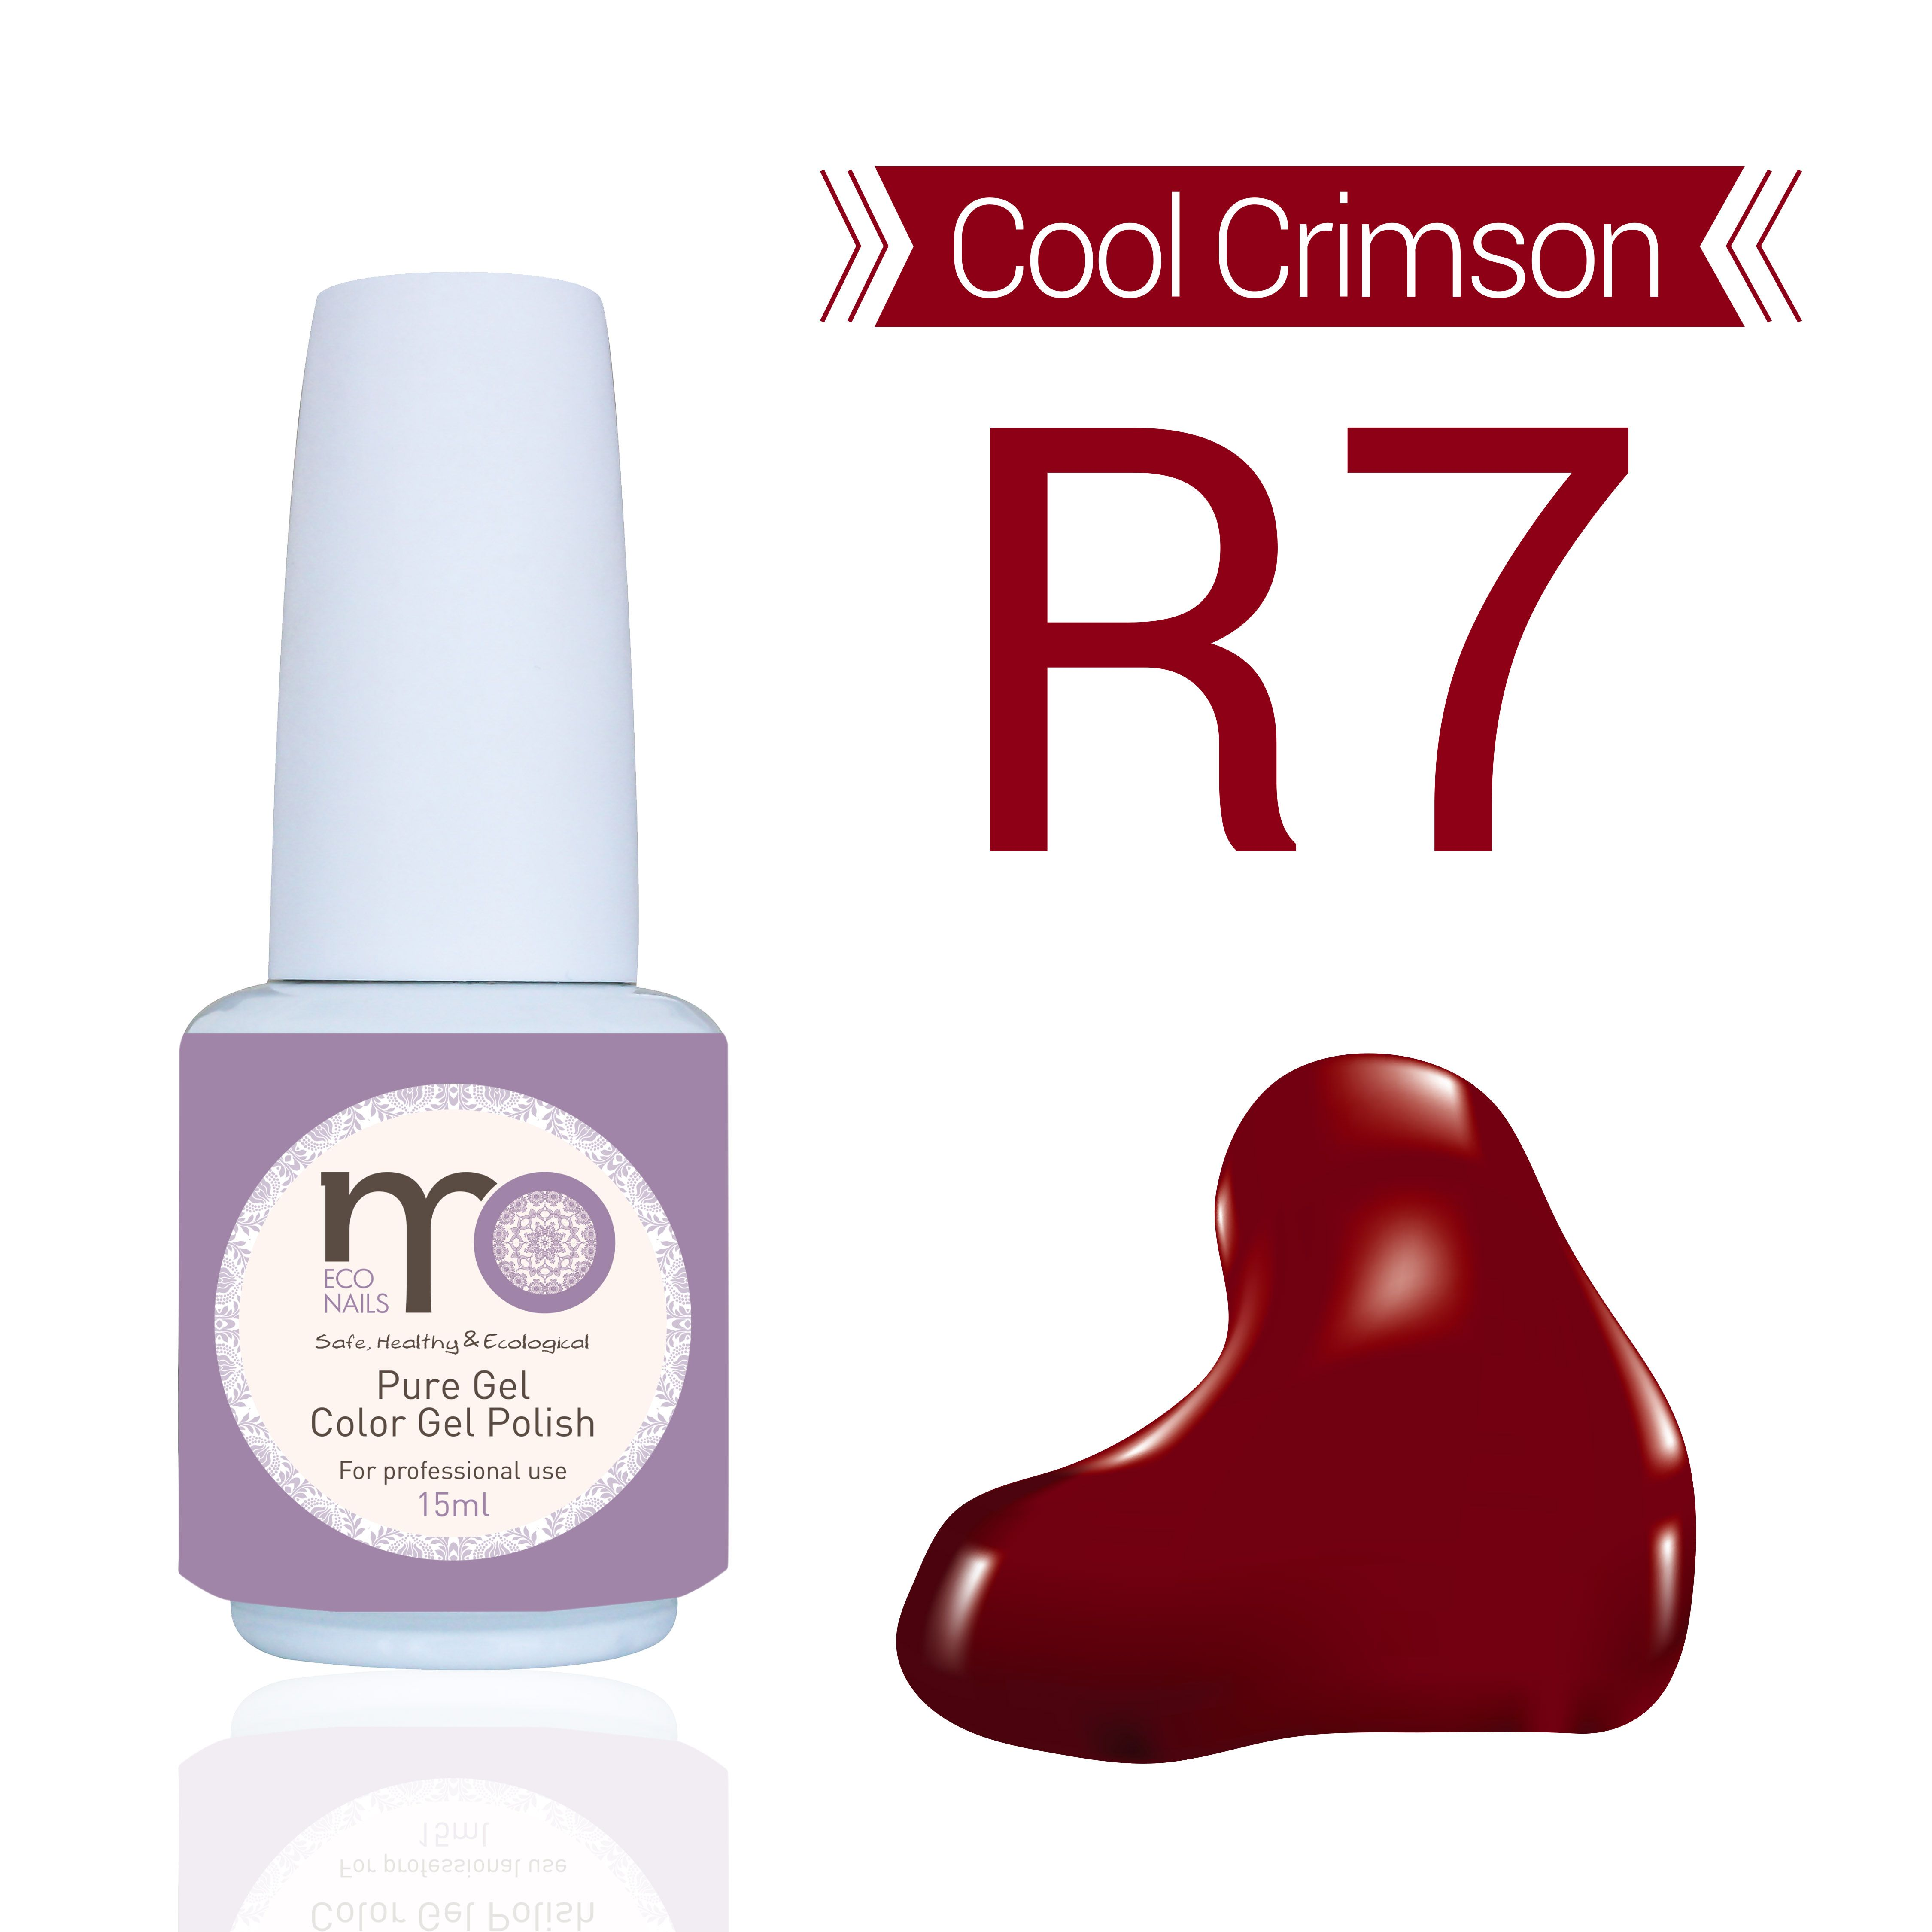 Red remains a highly #influential fashion #color! #R7 Cool Crimson ...